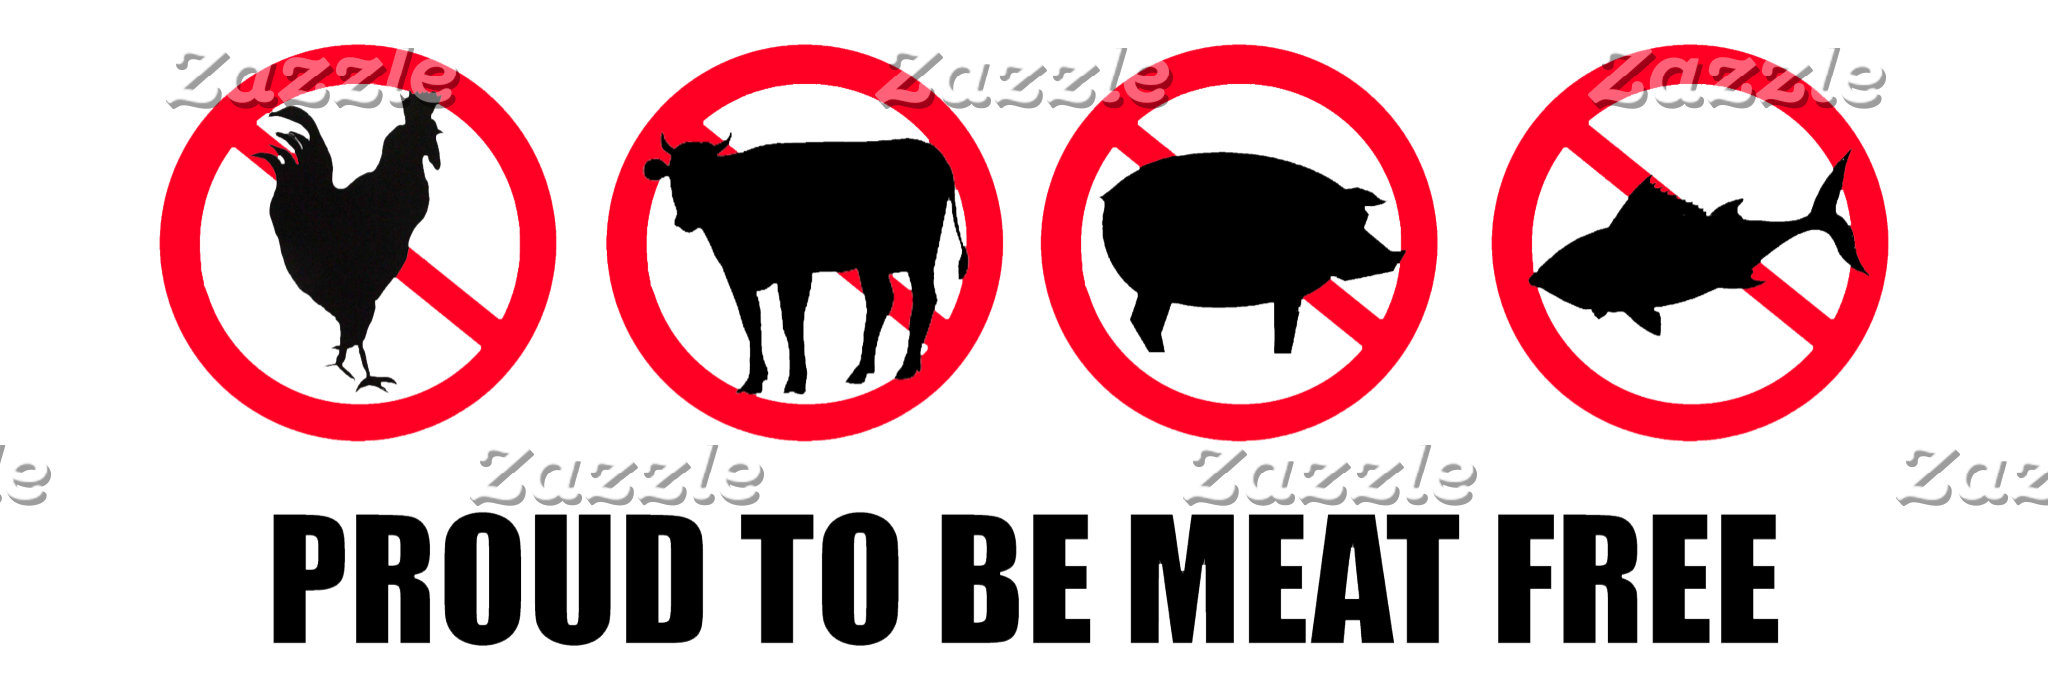 Proud To Be Meat Free